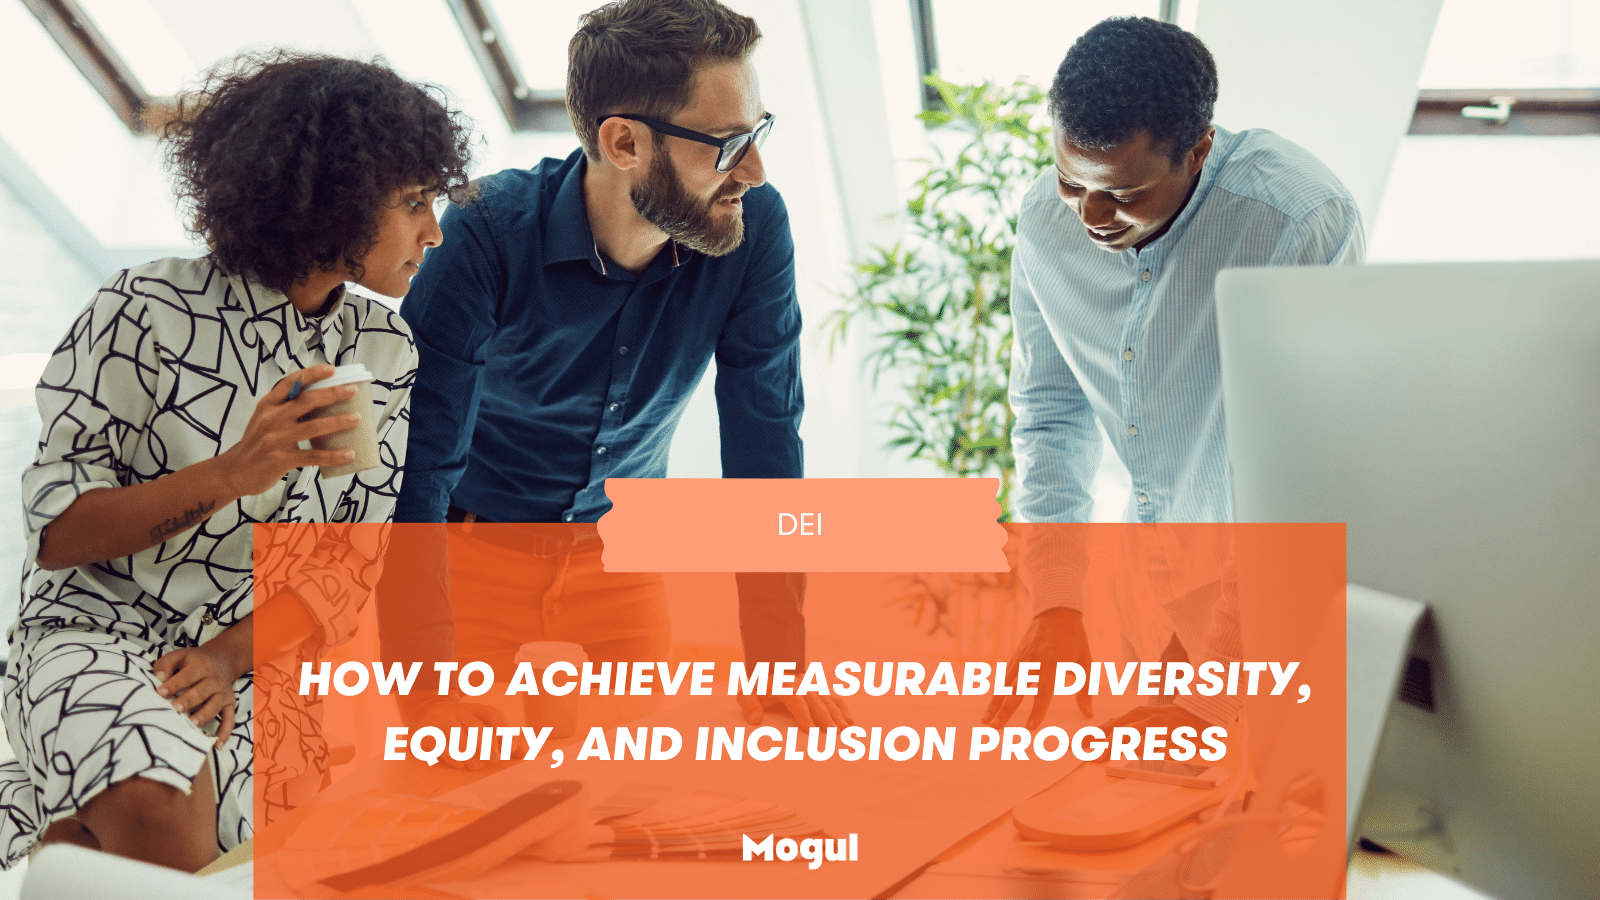 How to Achieve Measurable Diversity, Equity, and Inclusion Progress